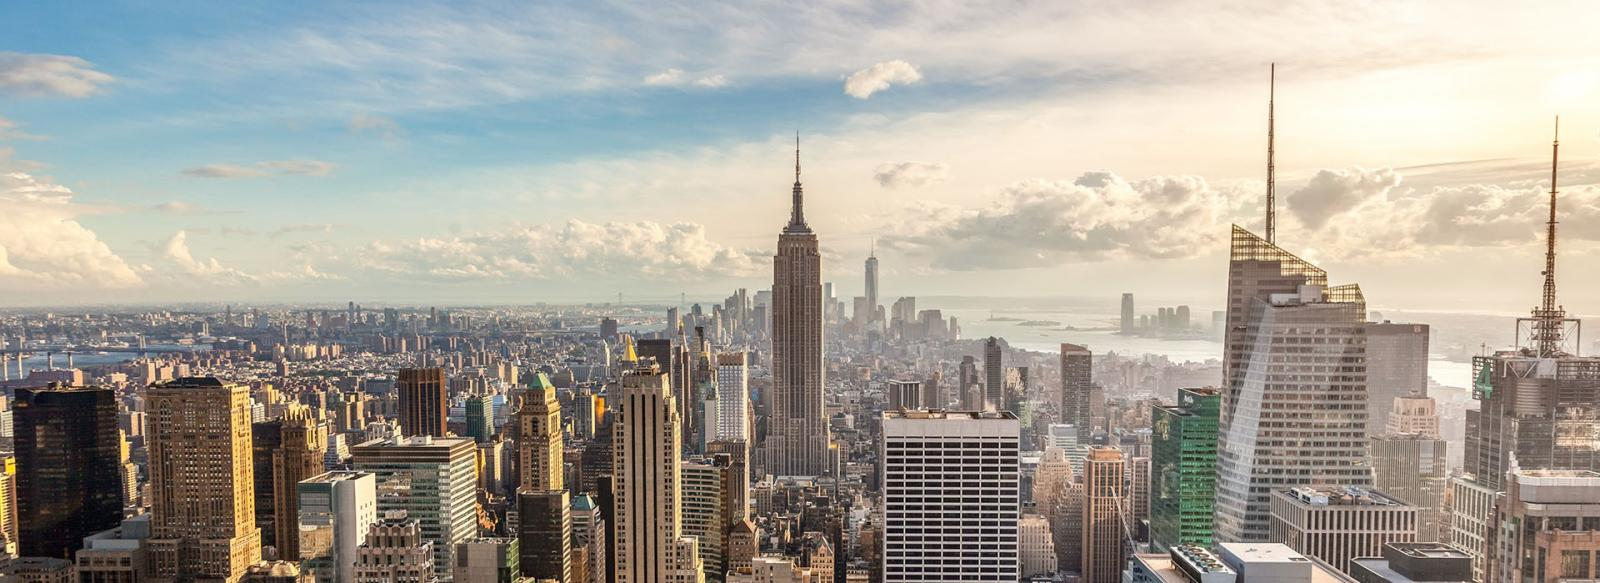 helicopter manhattan with Best Rooftop Bars In New York on Chinatown Manhattan besides The Island Dangerous Visit Mysterious Sentinelese Tribe Rejected Outsiders 60 000 Years Try Kill Sets Foot Land also Best Rooftop Bars In New York together with Lyft Nyc moreover City of rio de janeiro.